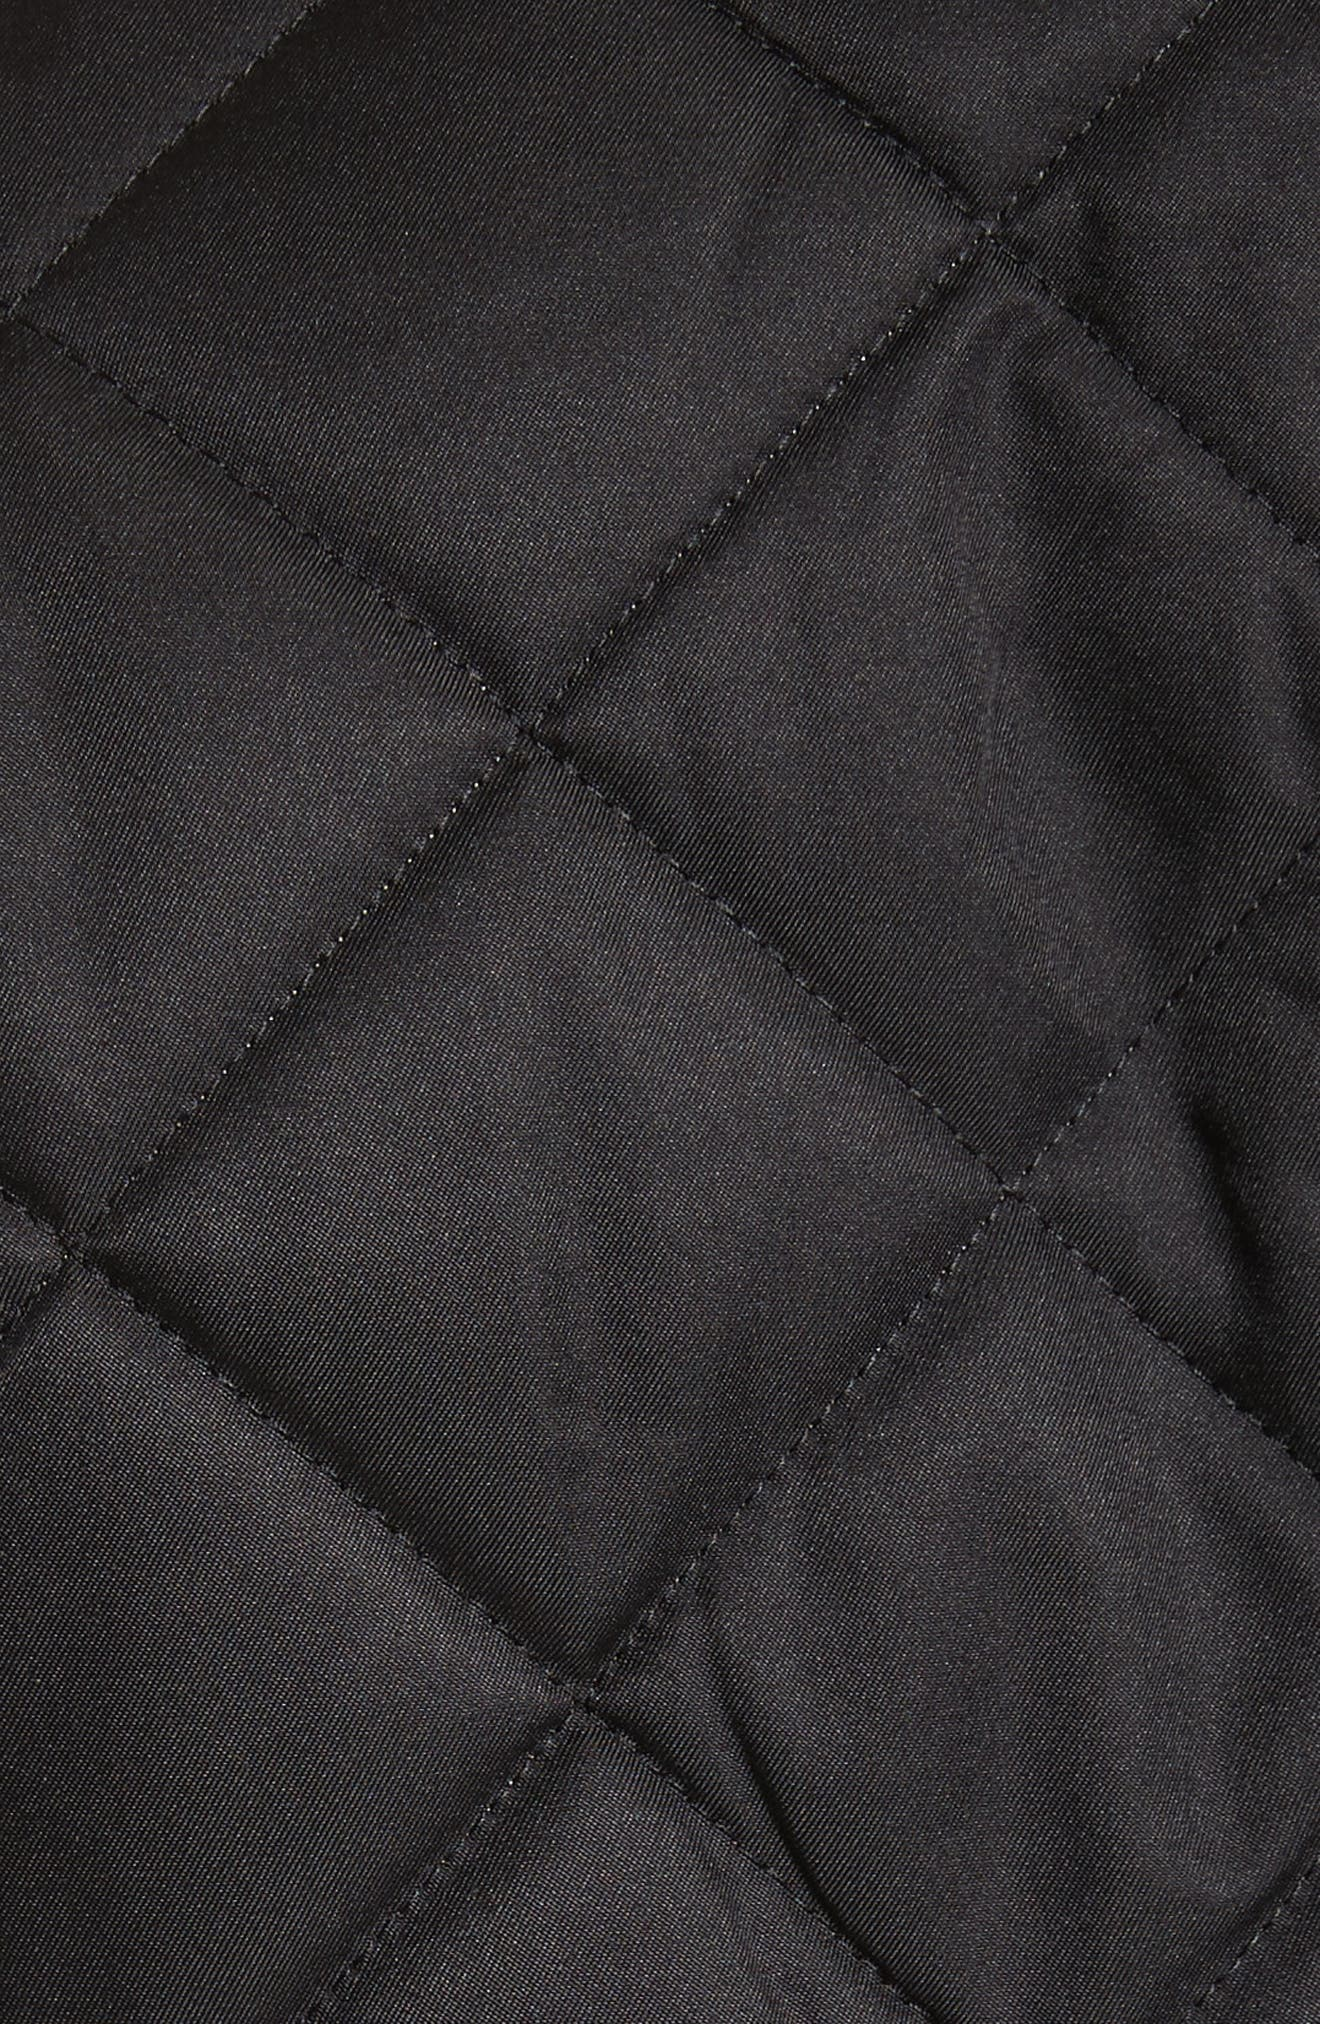 Frankby Quilted Jacket,                             Alternate thumbnail 6, color,                             001